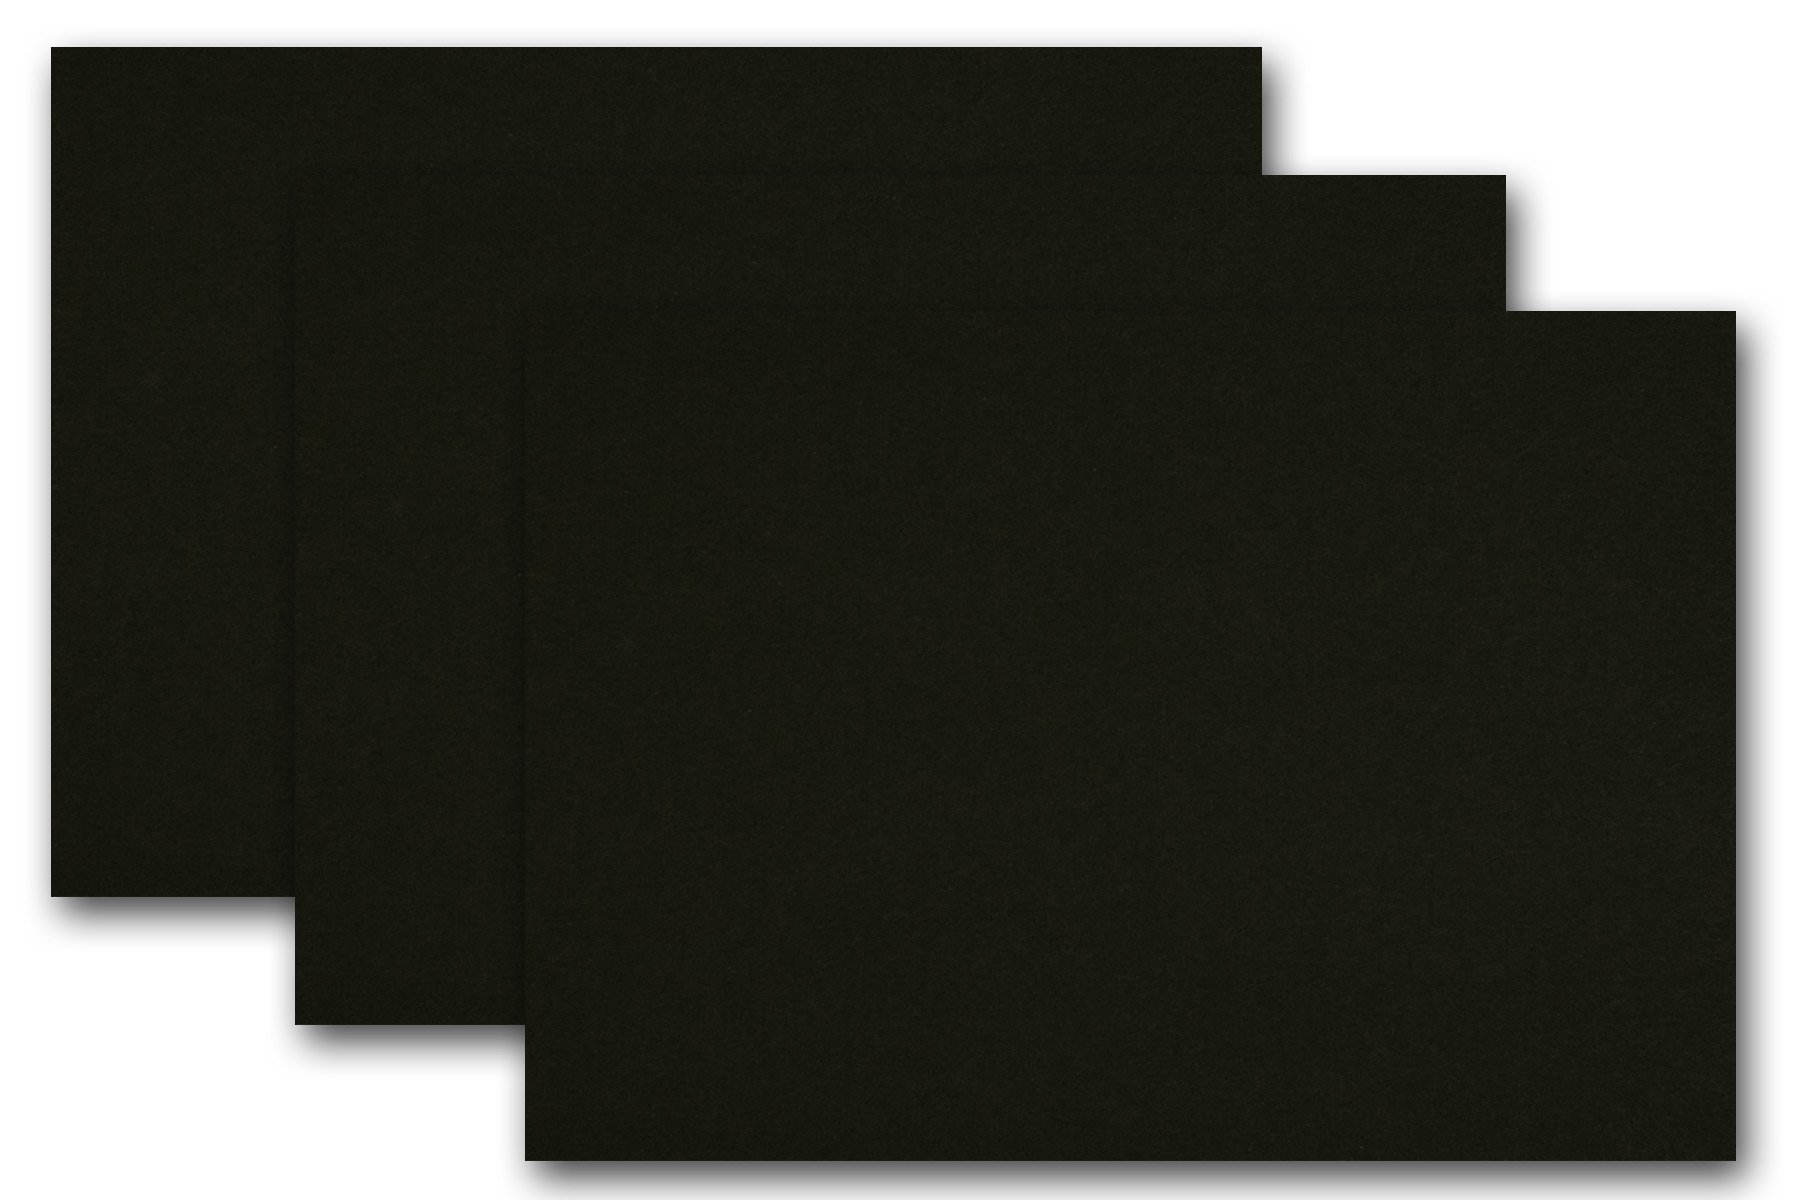 Premium Colored Blank 4x6 Card Stock (250 Pack, Black Licorice)